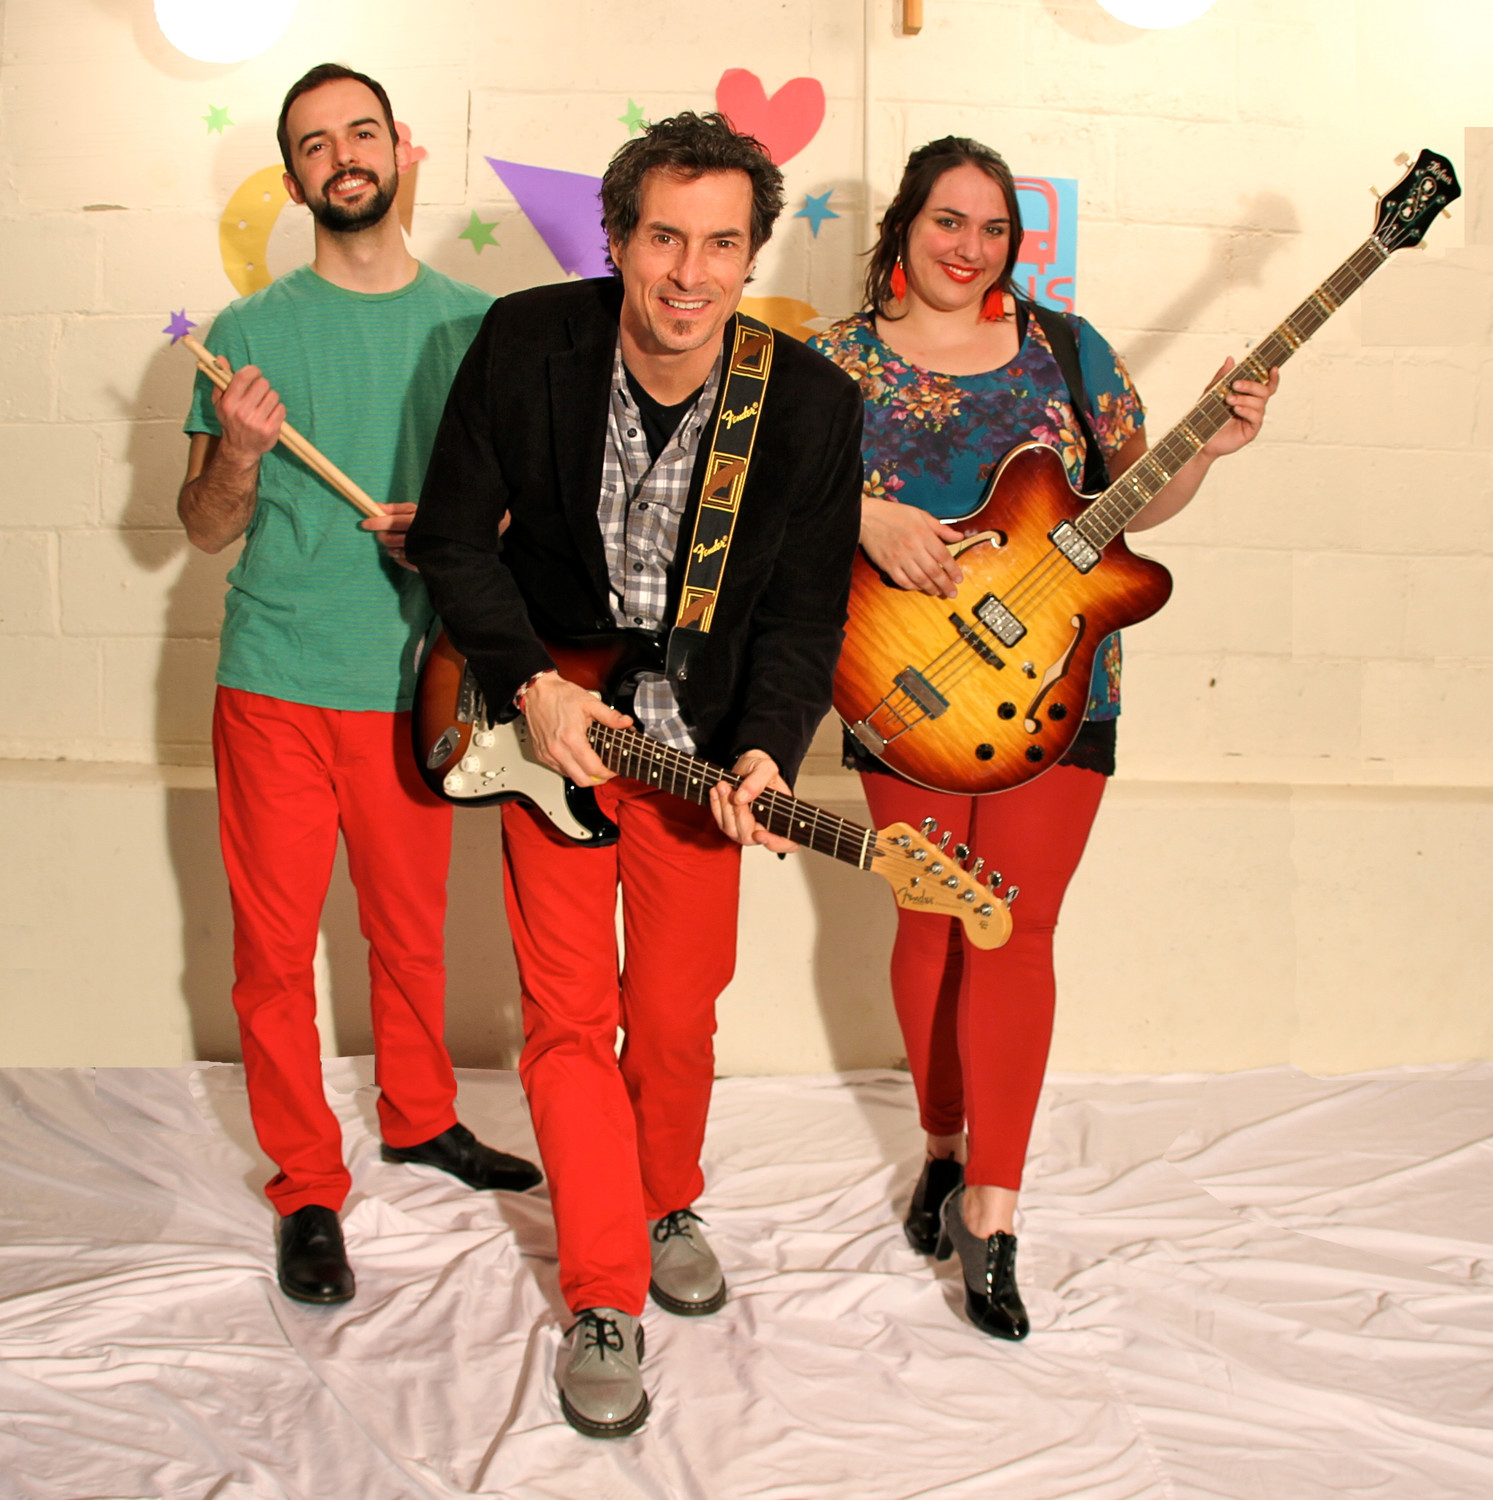 Frontman Danny Weinkauf, center, and his Red Pants band are scheduled to play two shows at the Long Island Children's Museum this summer. Above, Weinkauf with drummer Steve Plesnarski and bassist Tina Kenny Jones